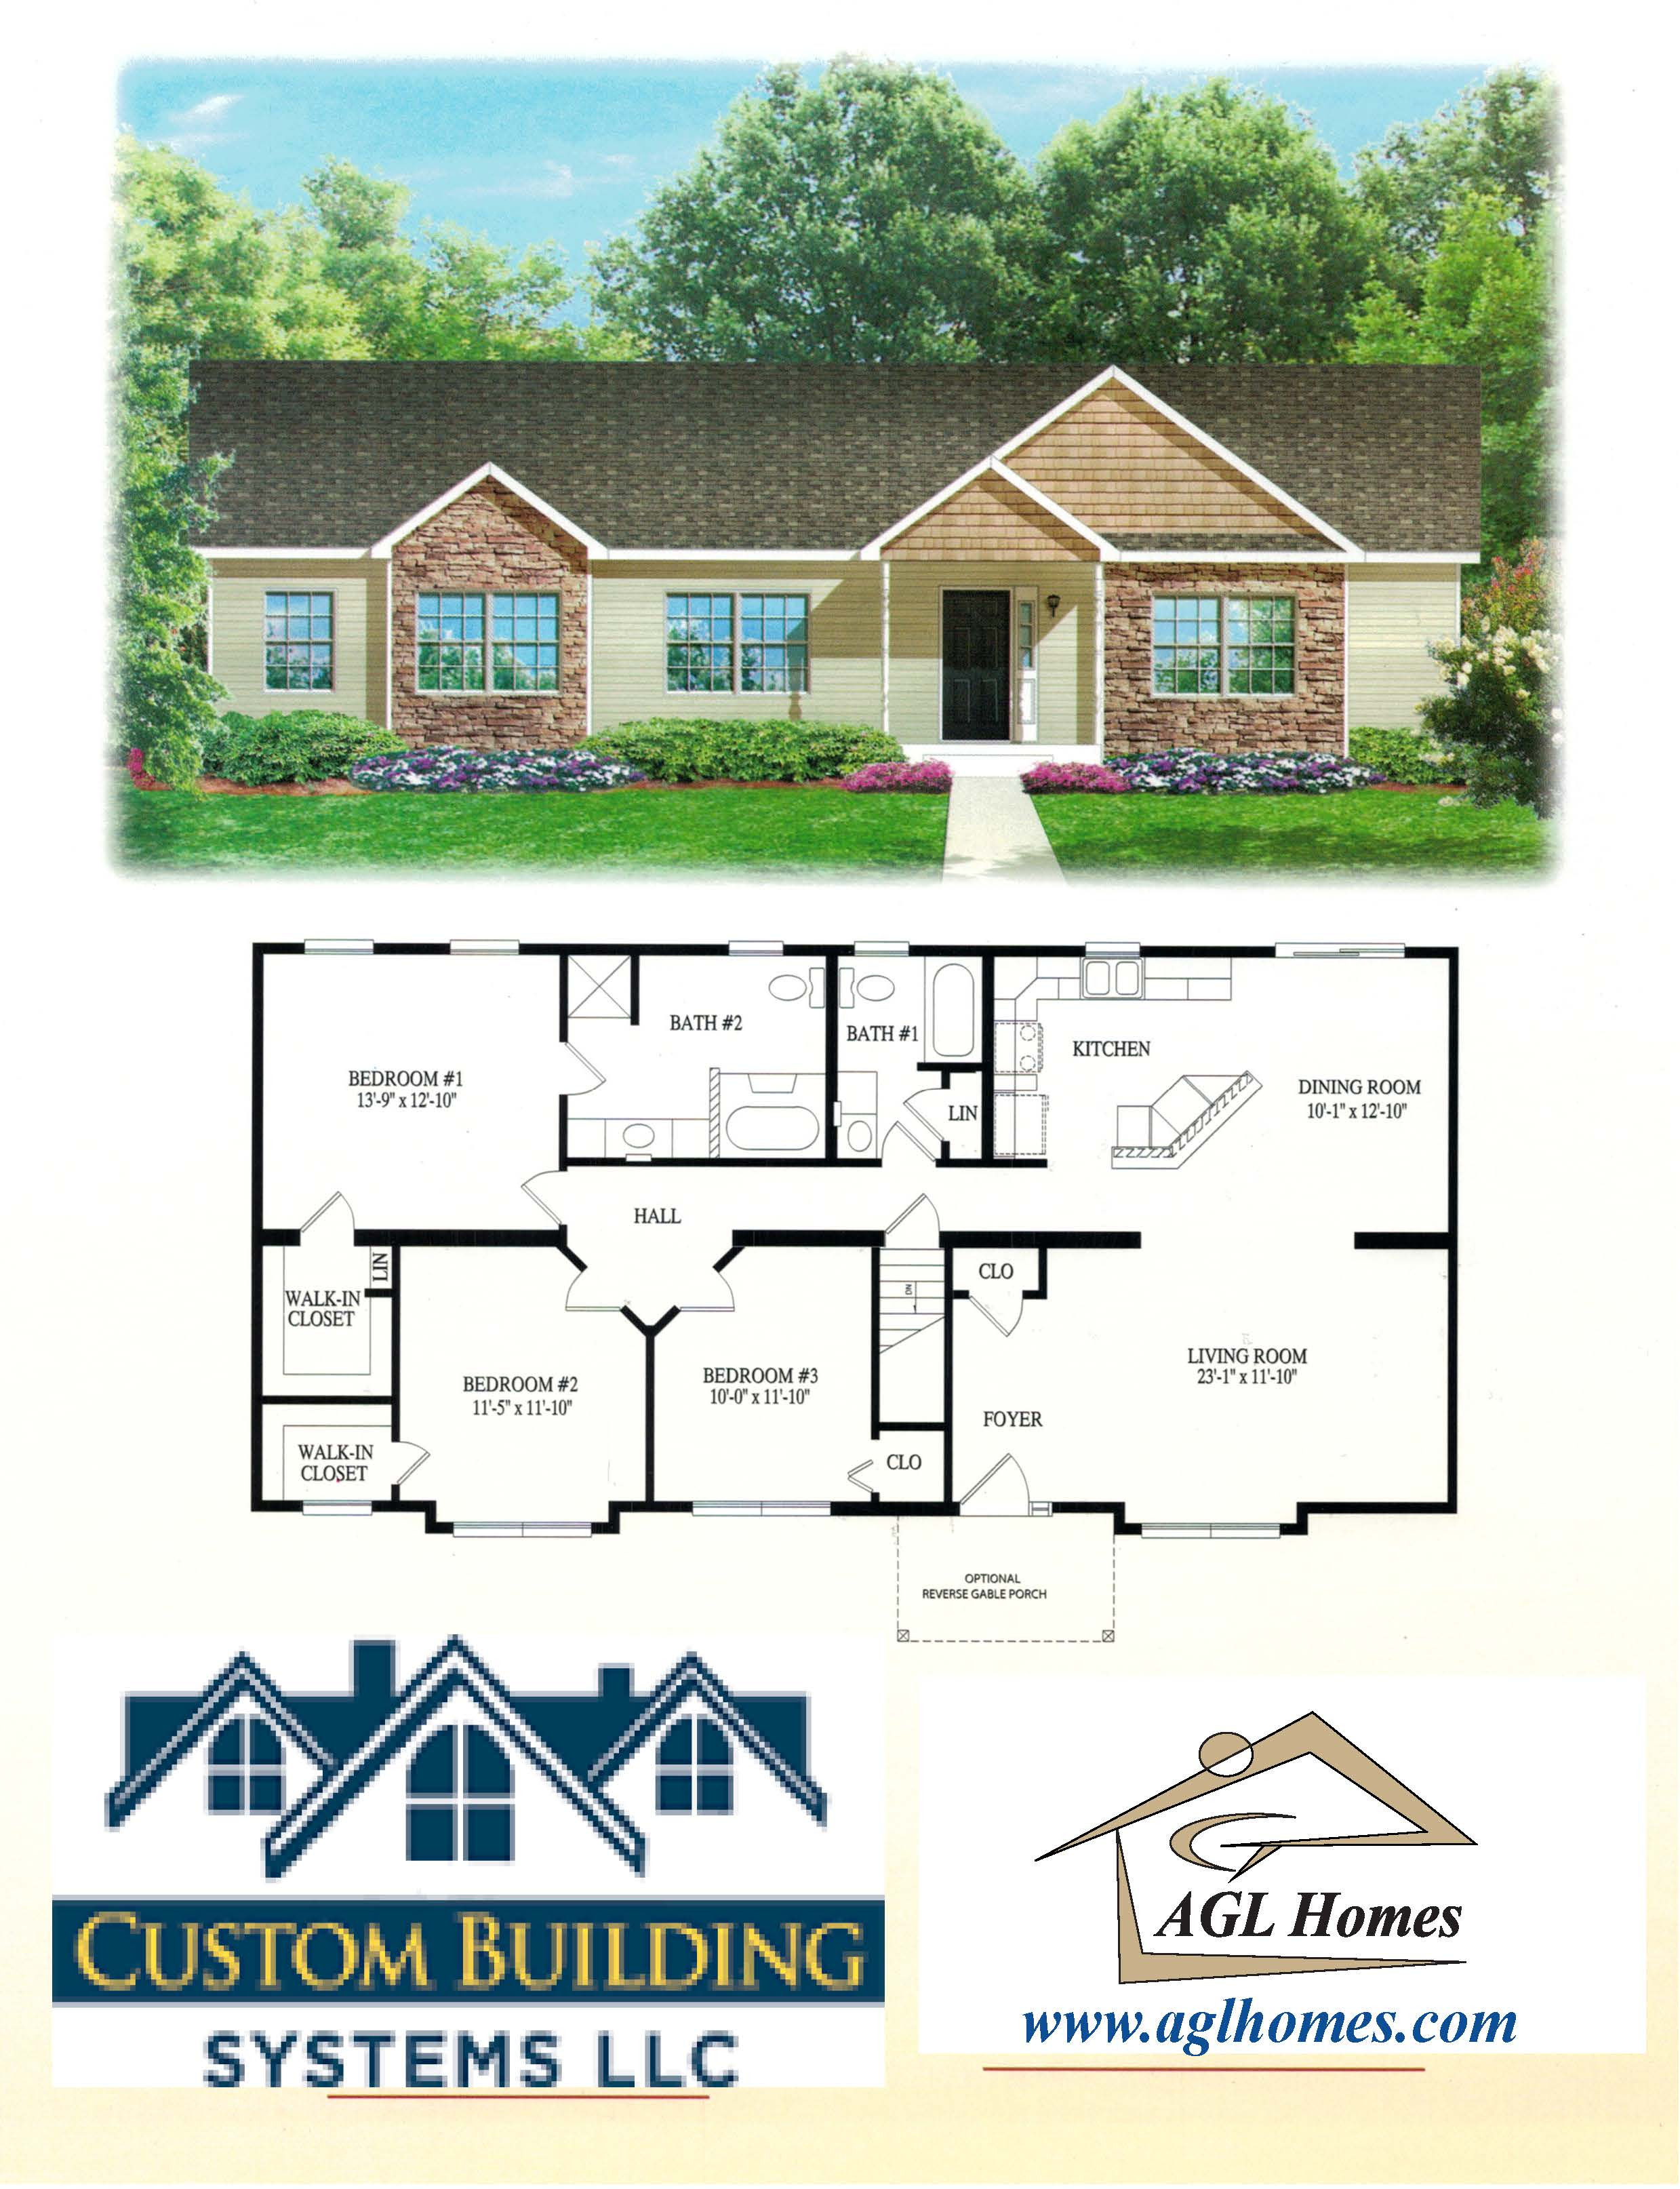 Modular House Plans with Prices Awesome Modular Home Plans Ny Cbs Modular Homes From Agl Homes